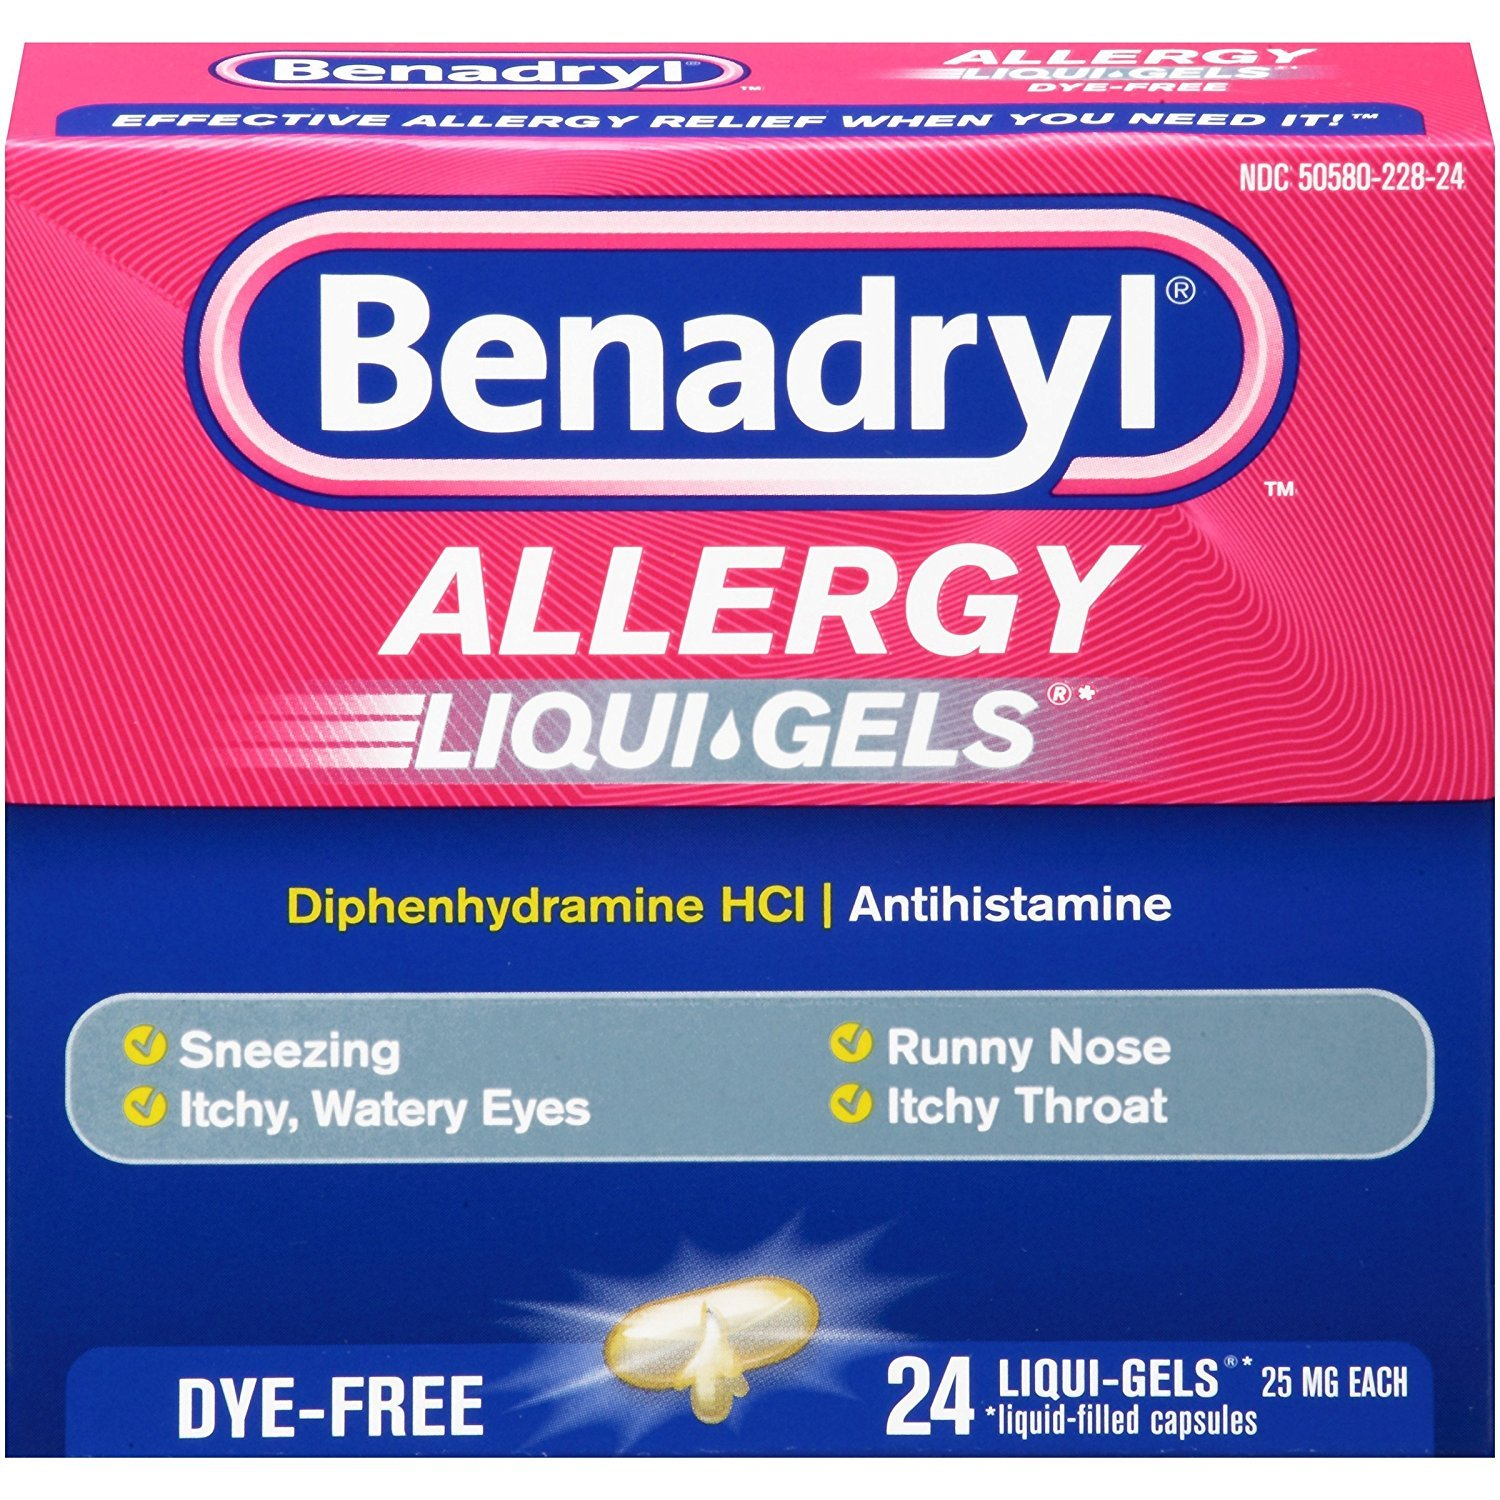 Benadryl Antihistamine Allergy Medicine & Cold Relief, Dye-Free LIQUI-GELS Tablets, Liquid Gels, 24 Count - Pack of 6